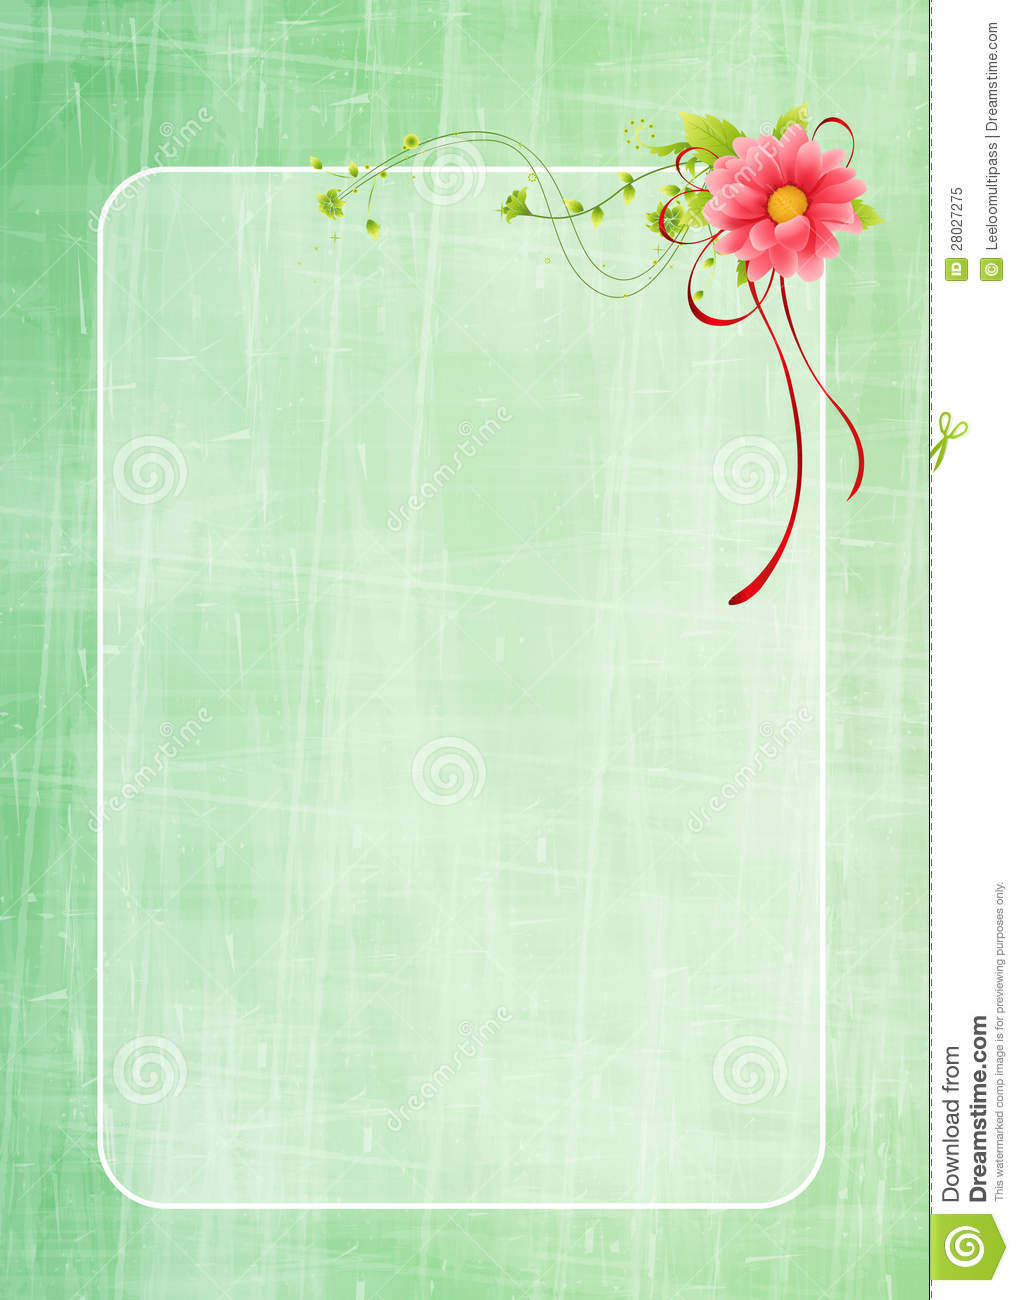 Floral greeting card design stock illustration illustration of floral greeting card design m4hsunfo